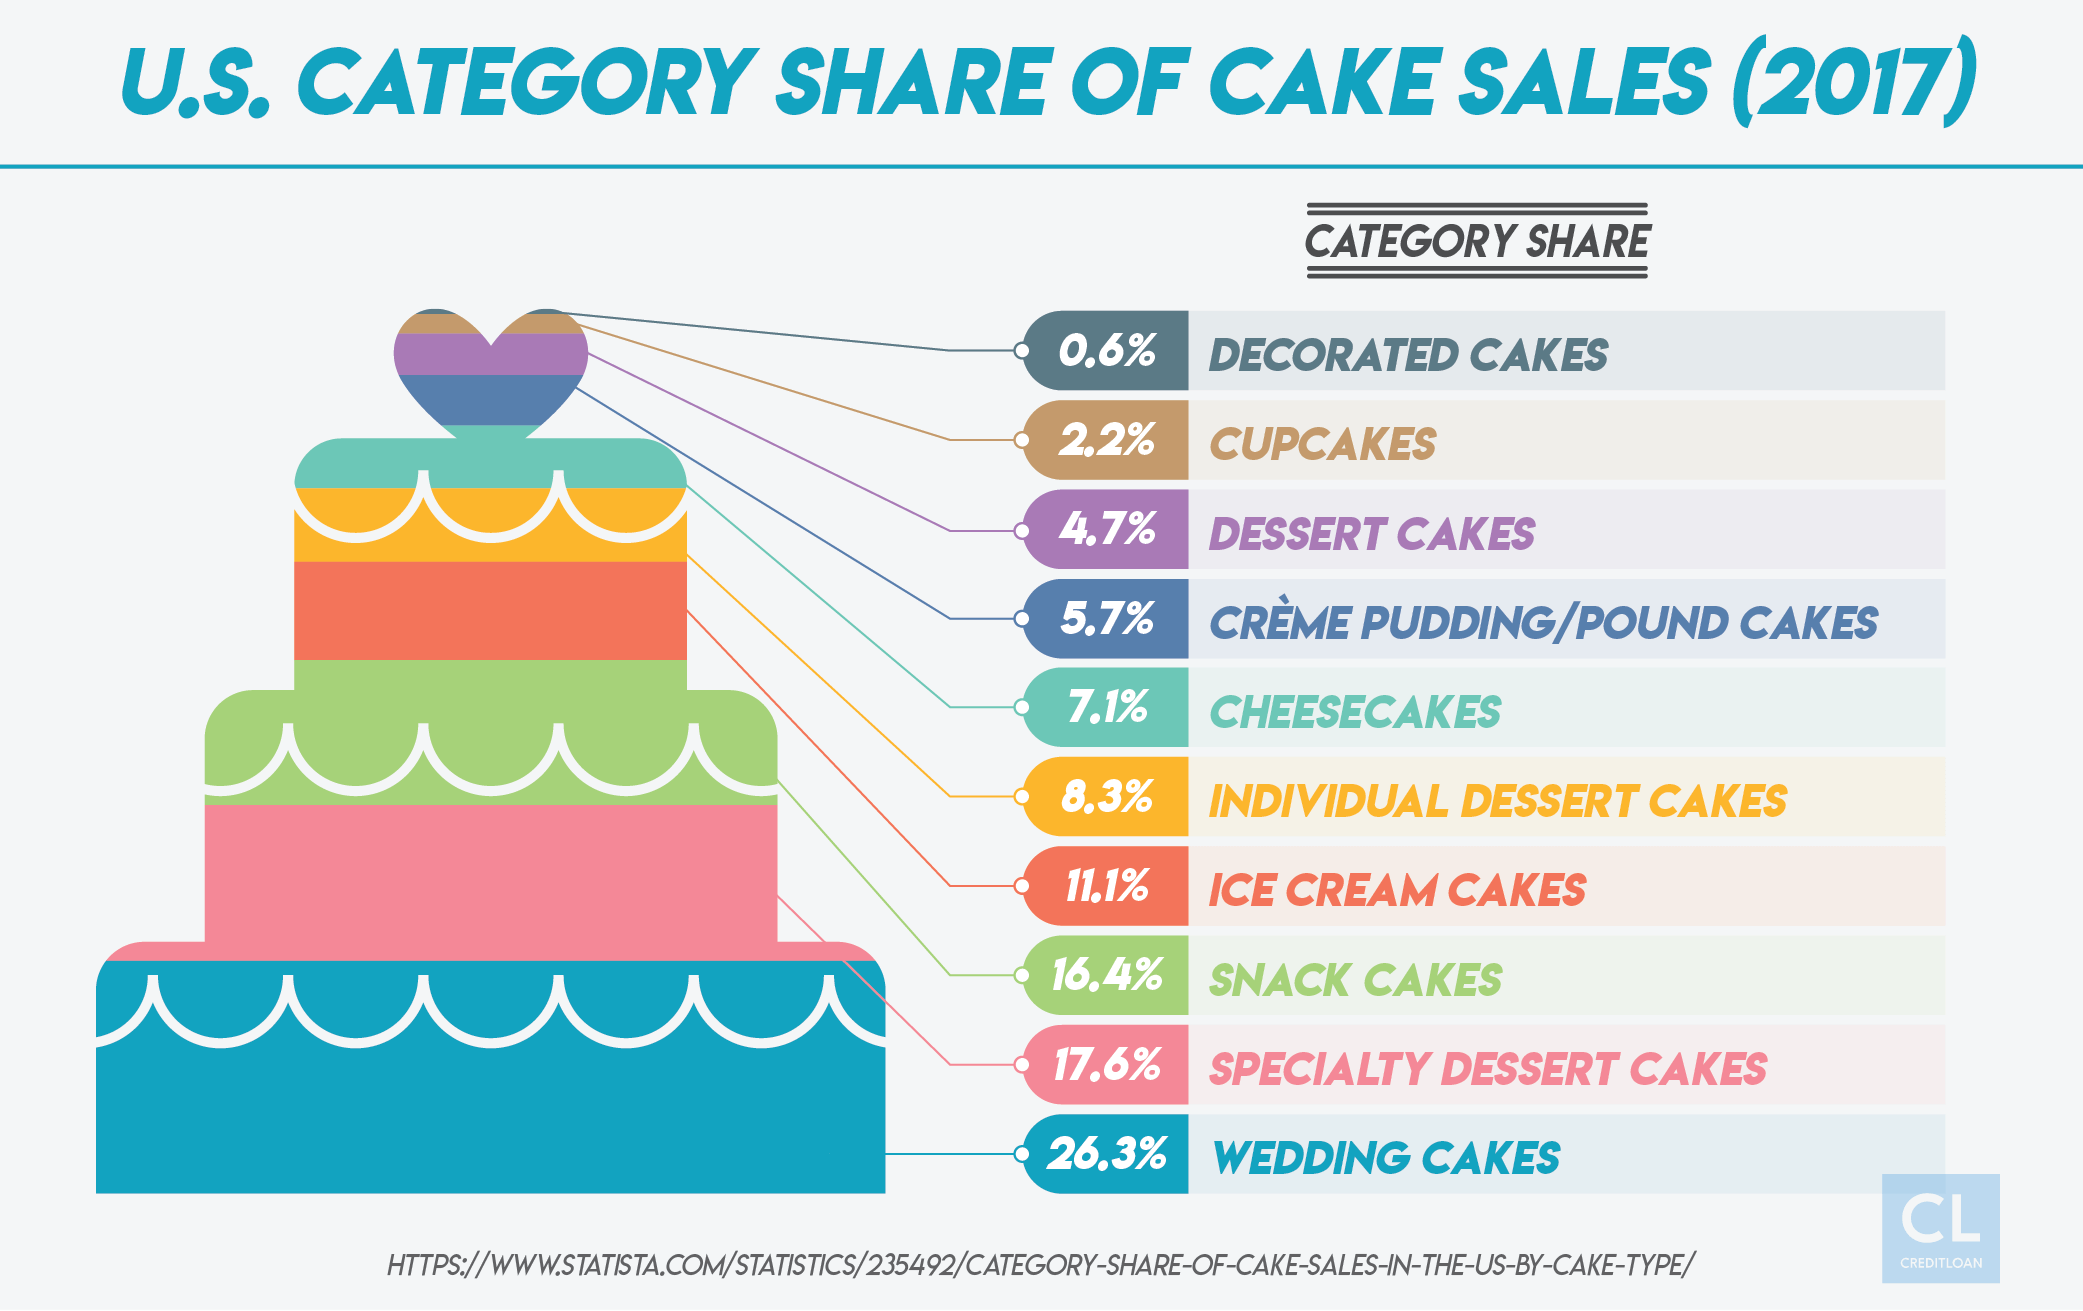 U.S. Category Share of Cake Sales in 2017